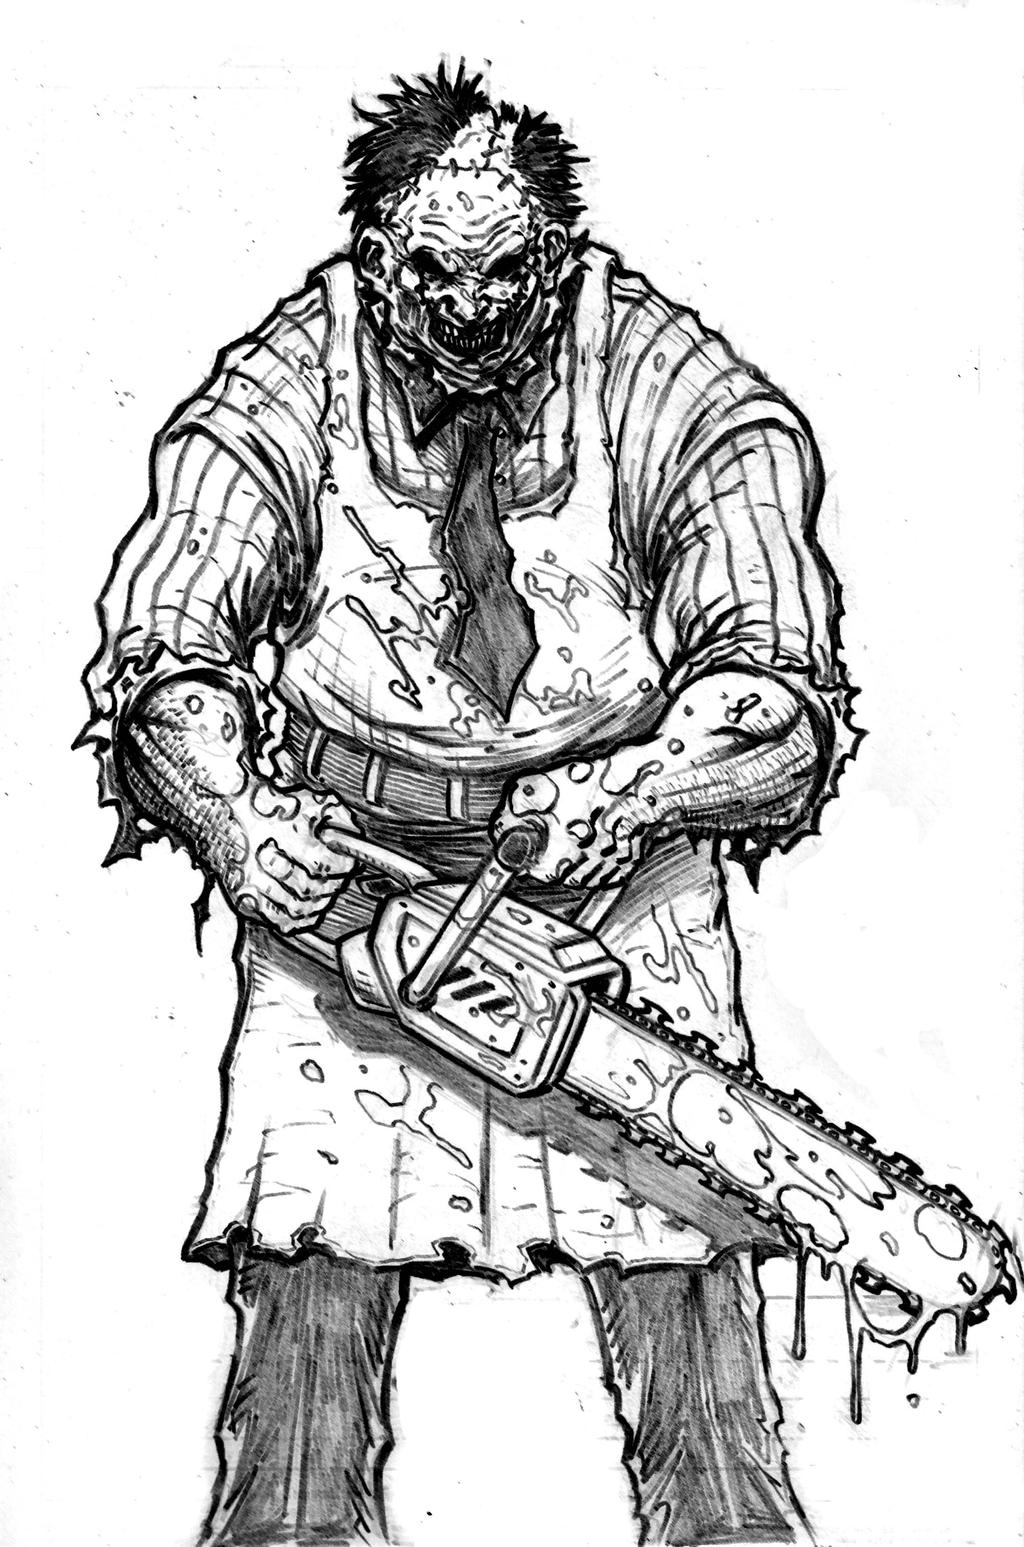 leatherface_by_c_crain d67vkig